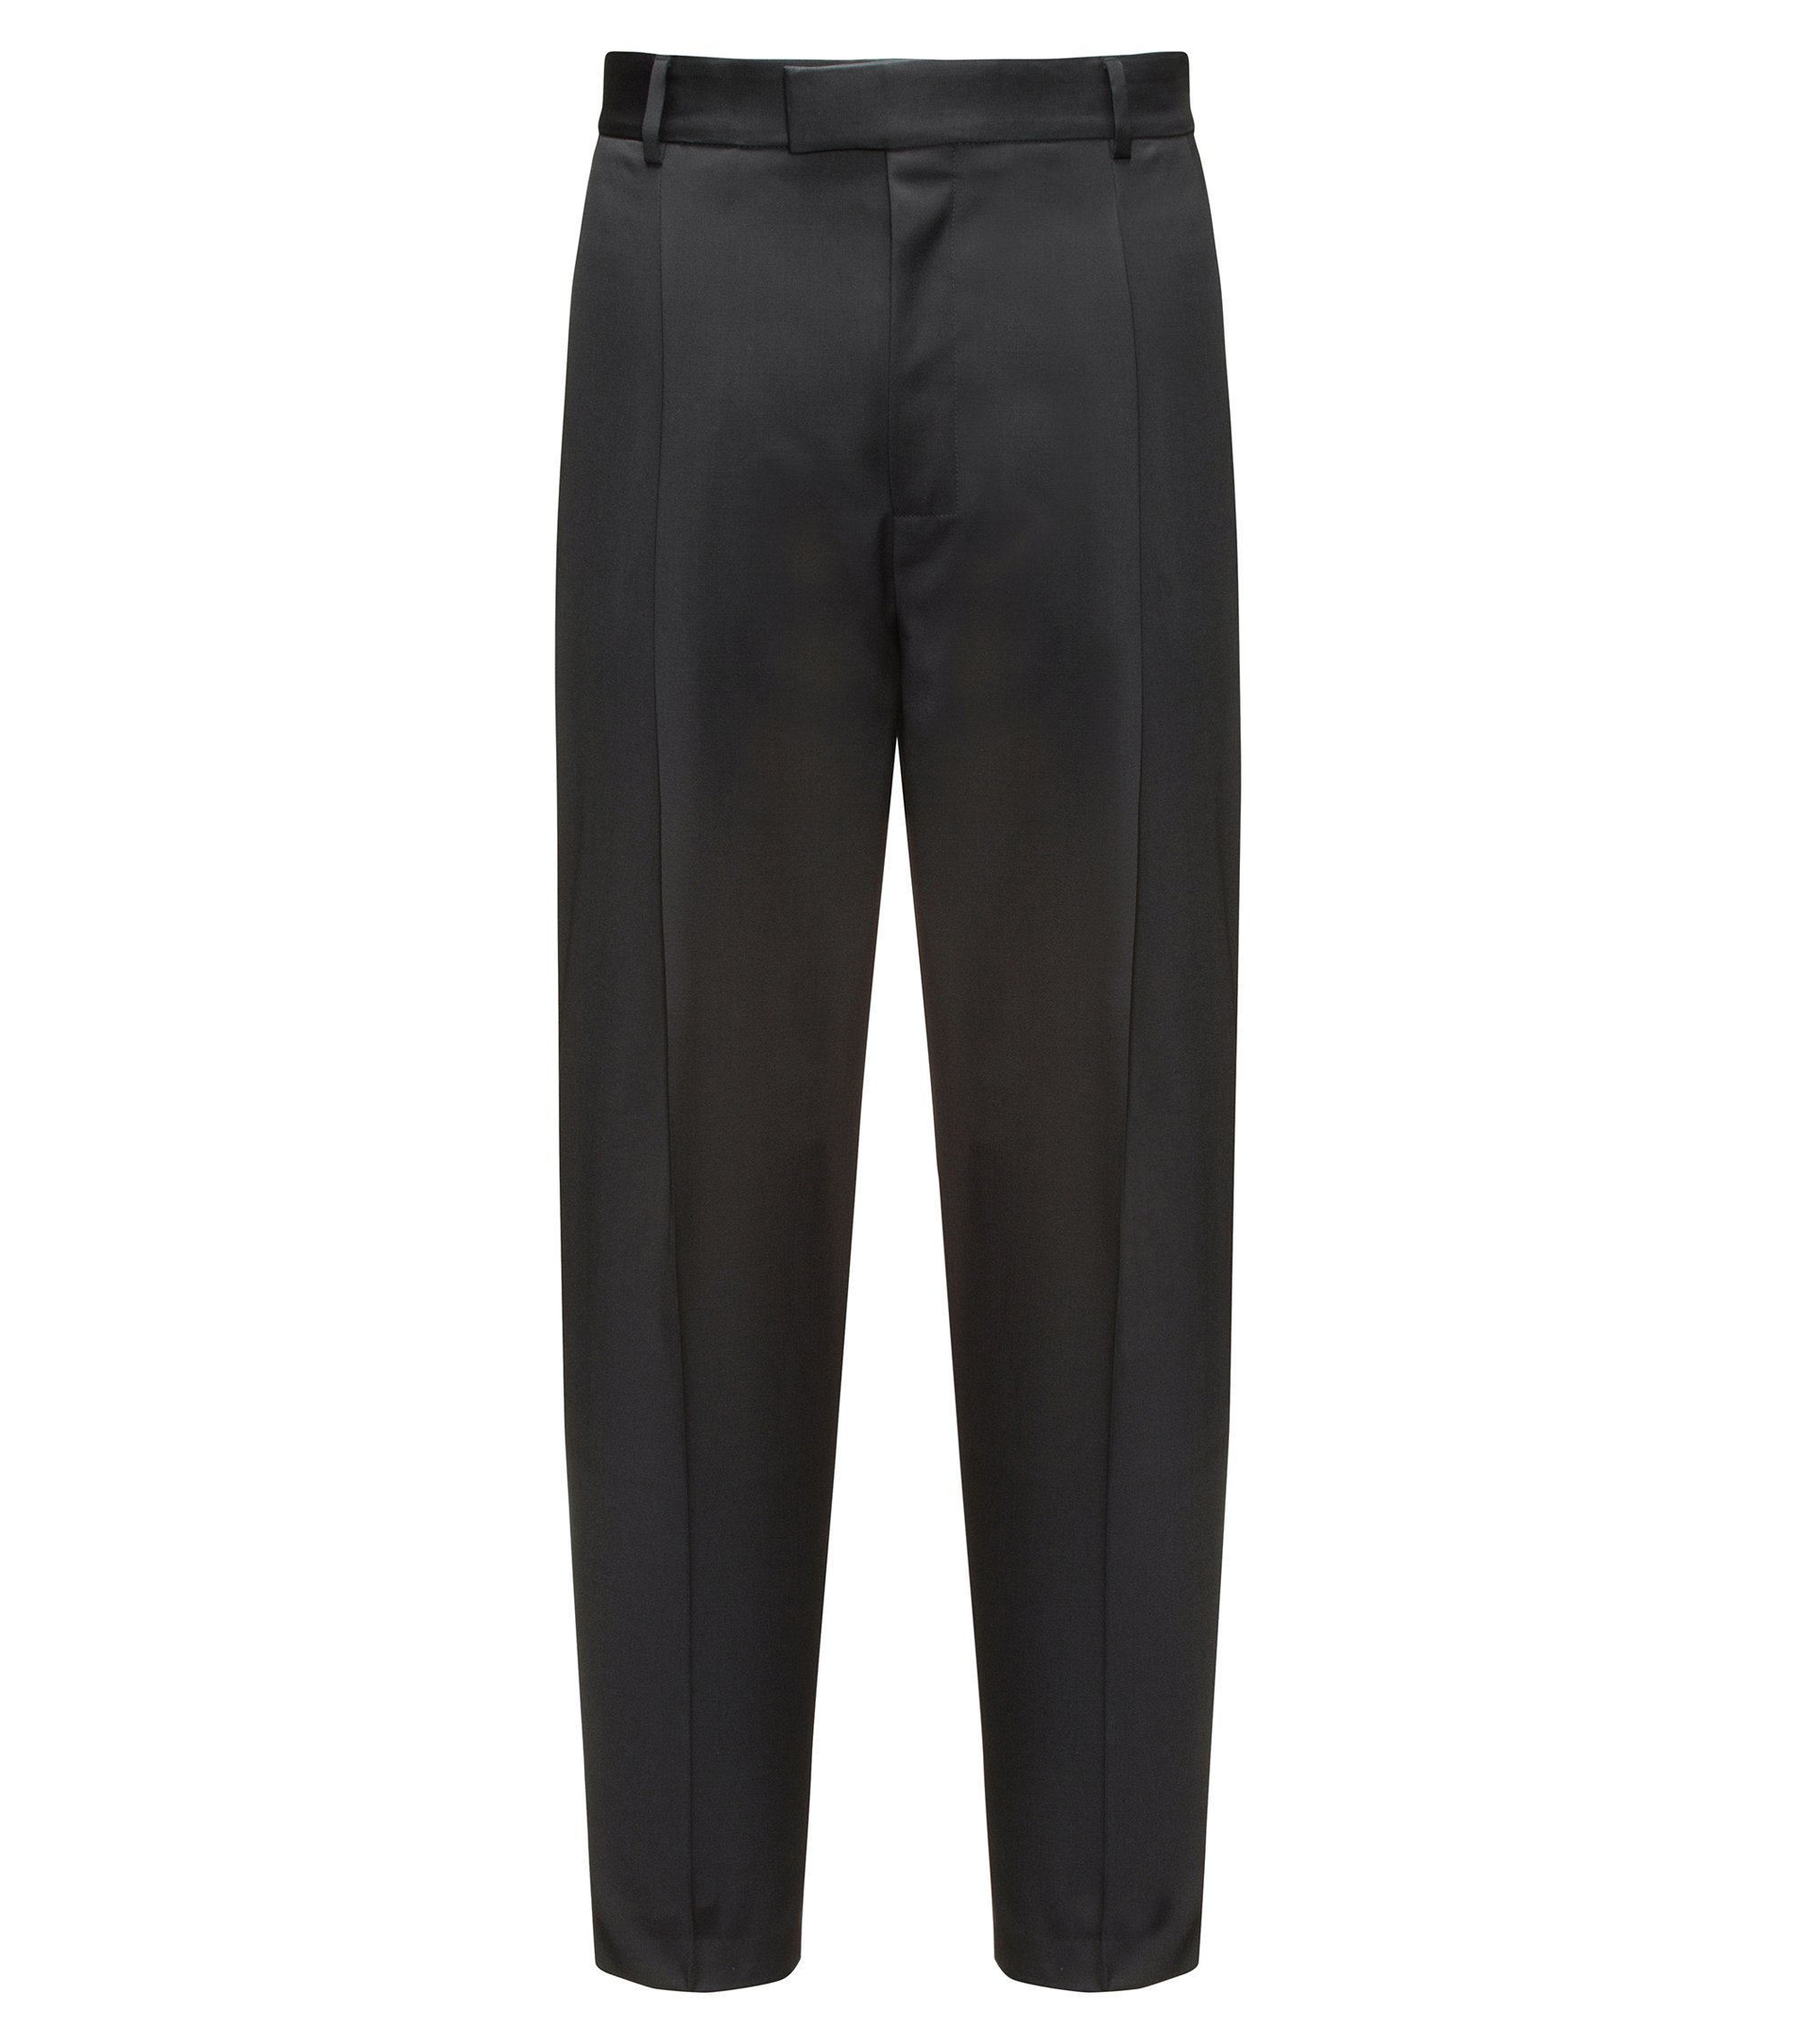 Pantaloni relaxed fit in lana vergine, Nero